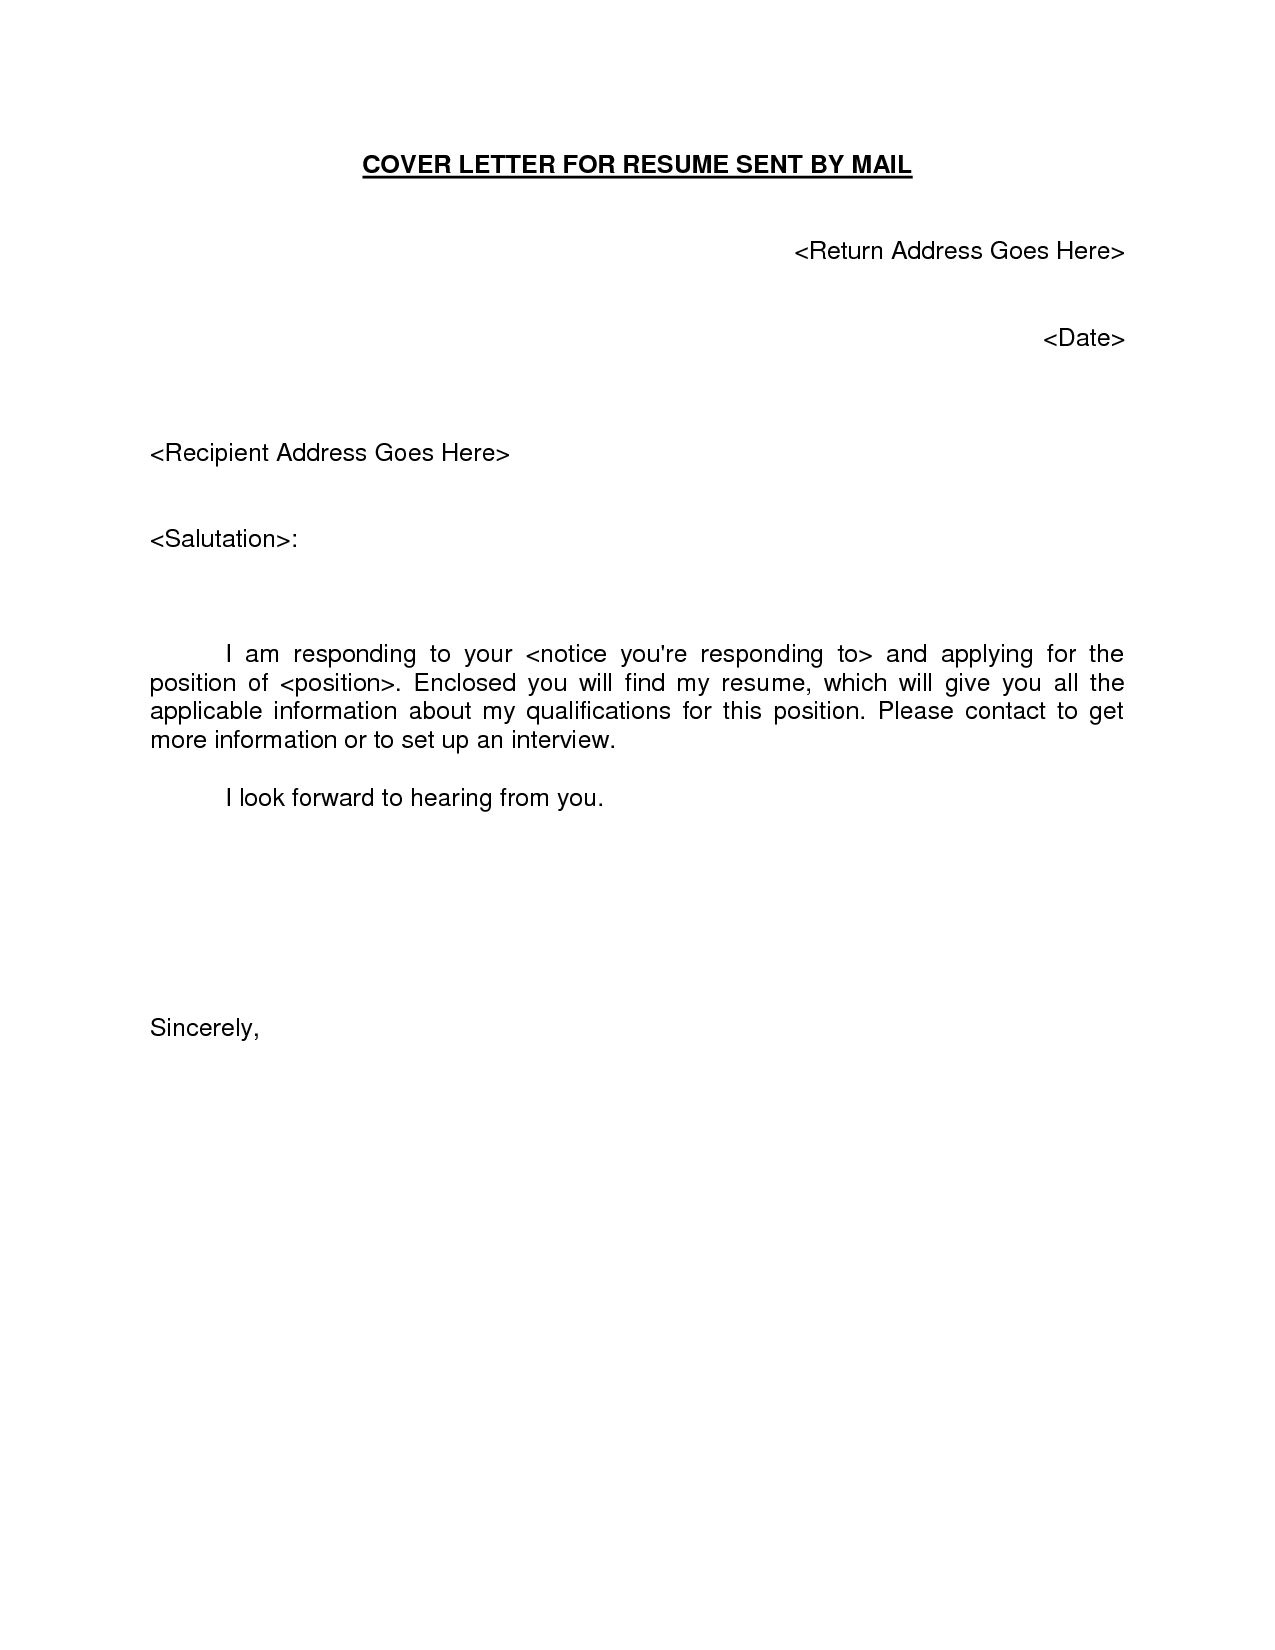 Email Cover Letter Template Email Resume Cover Letter Template Learnhowtoloseweight Net  News .